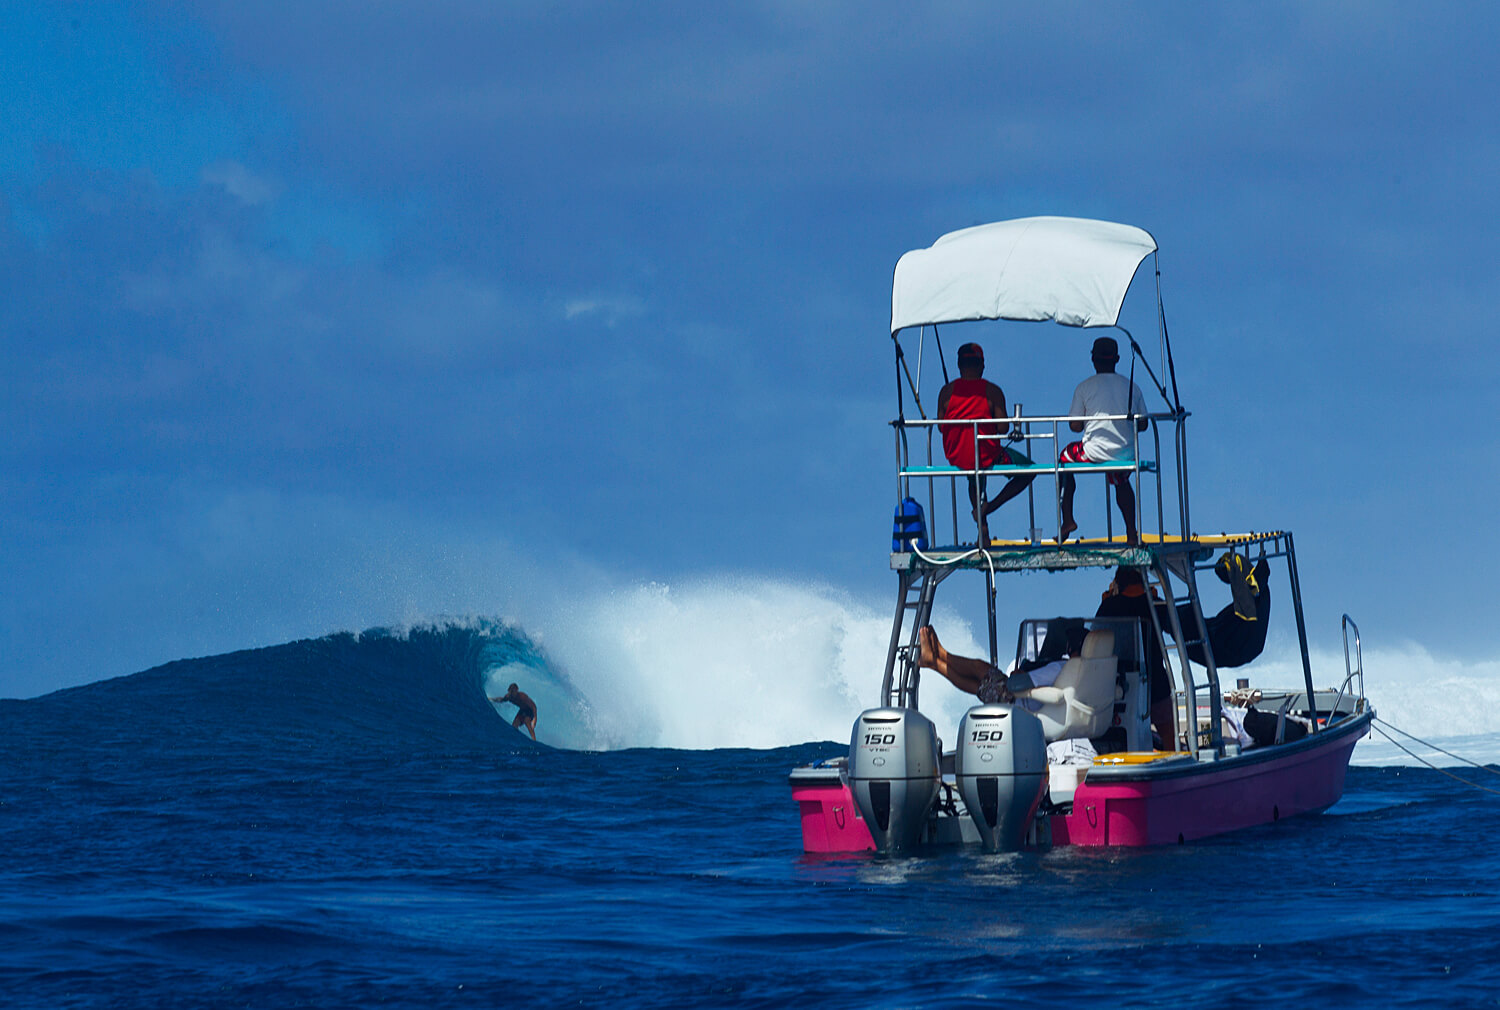 Witnessing Great Surf from the Boat